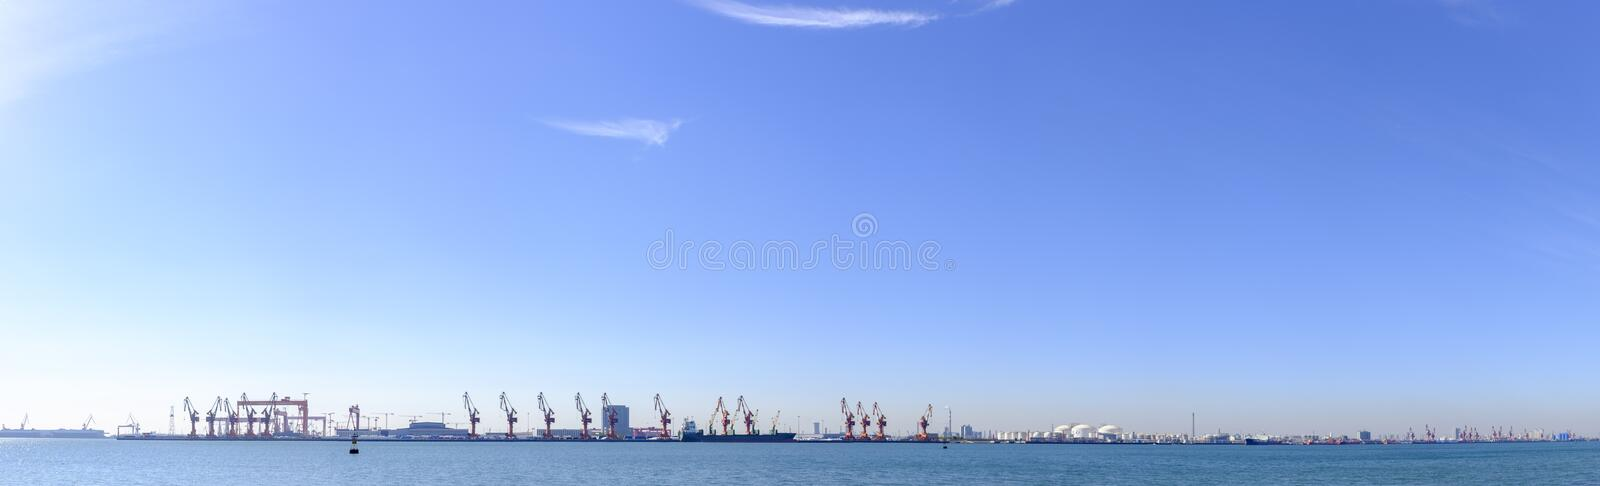 Tianjin Port,also known as Xingang, China stock photography